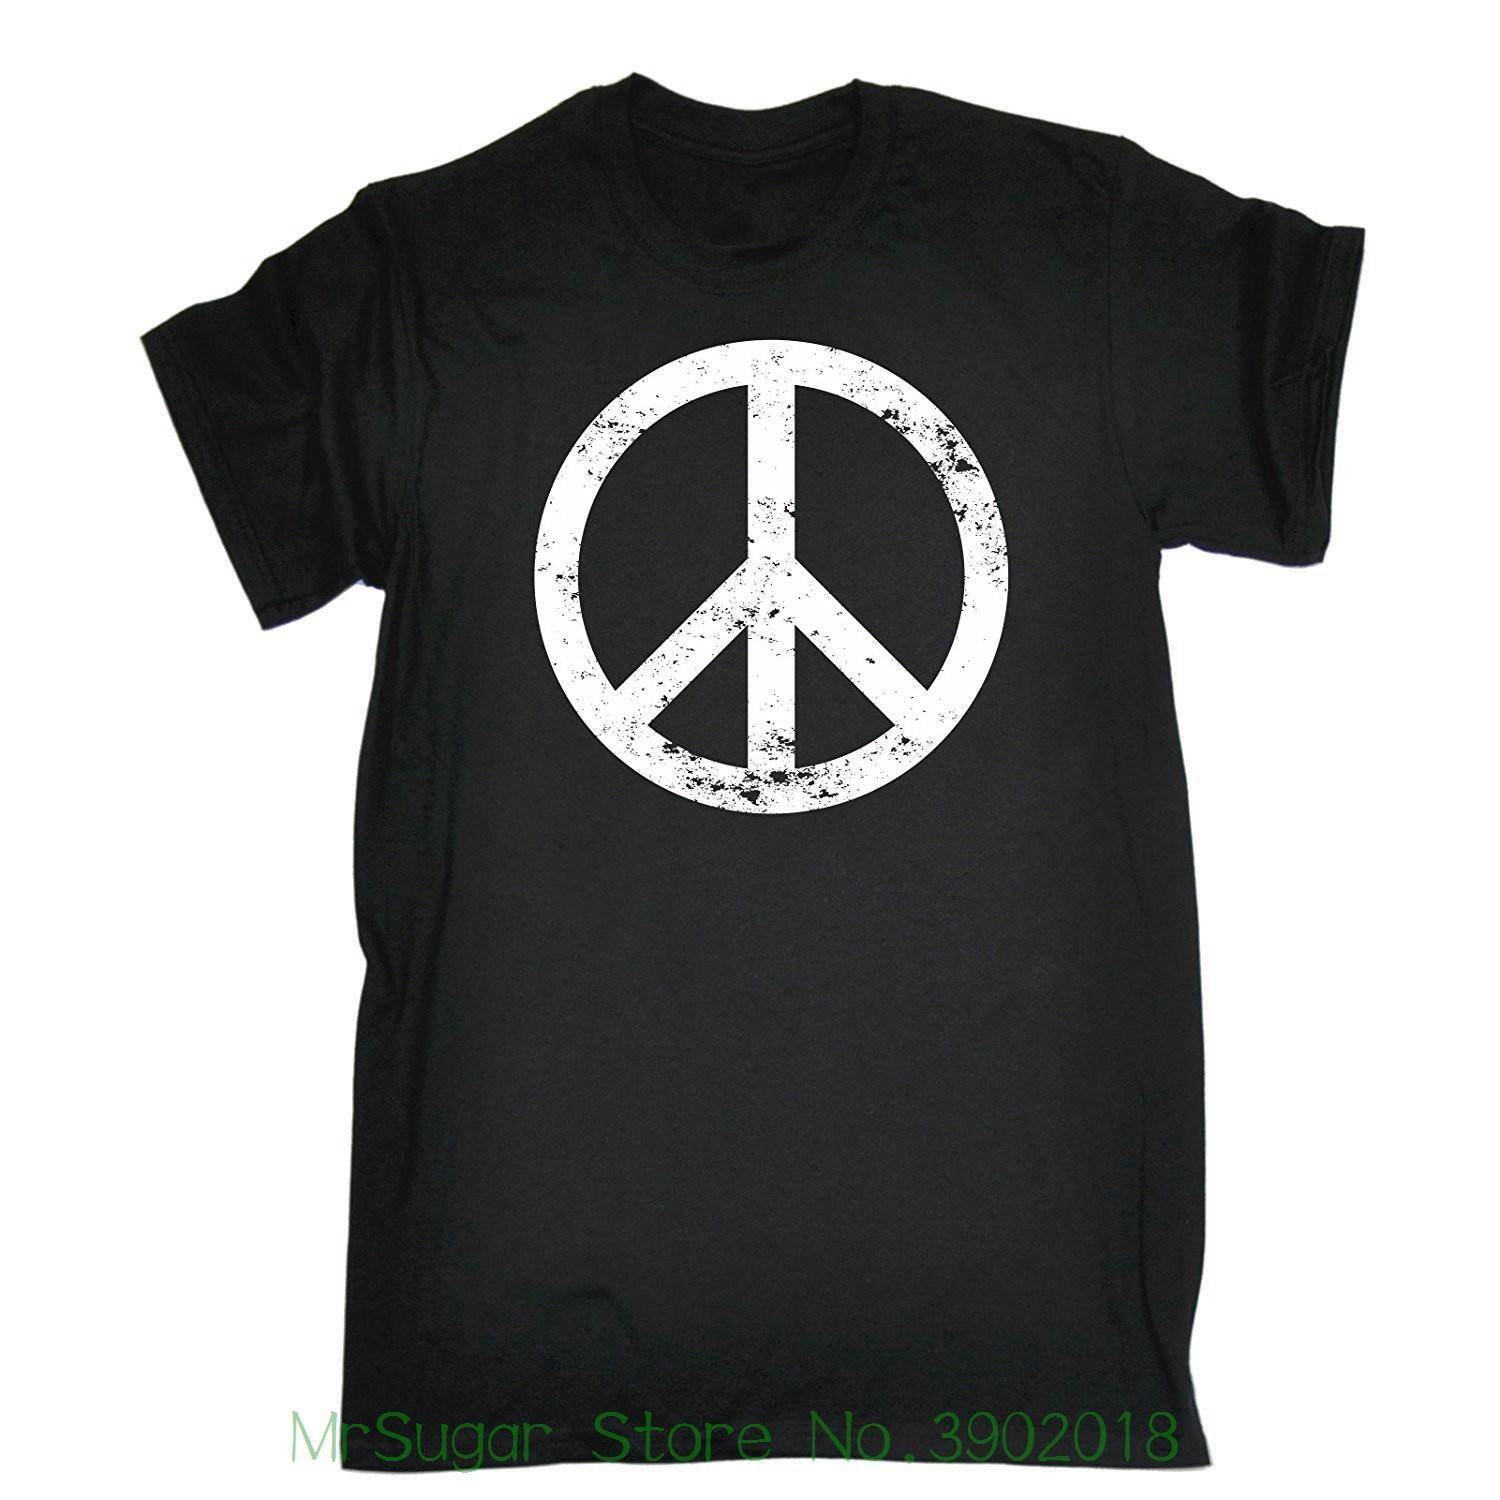 Symbol Seventies Anni Music Shirt Peace Top '70 T Acquista Tee OXTiZkwPul